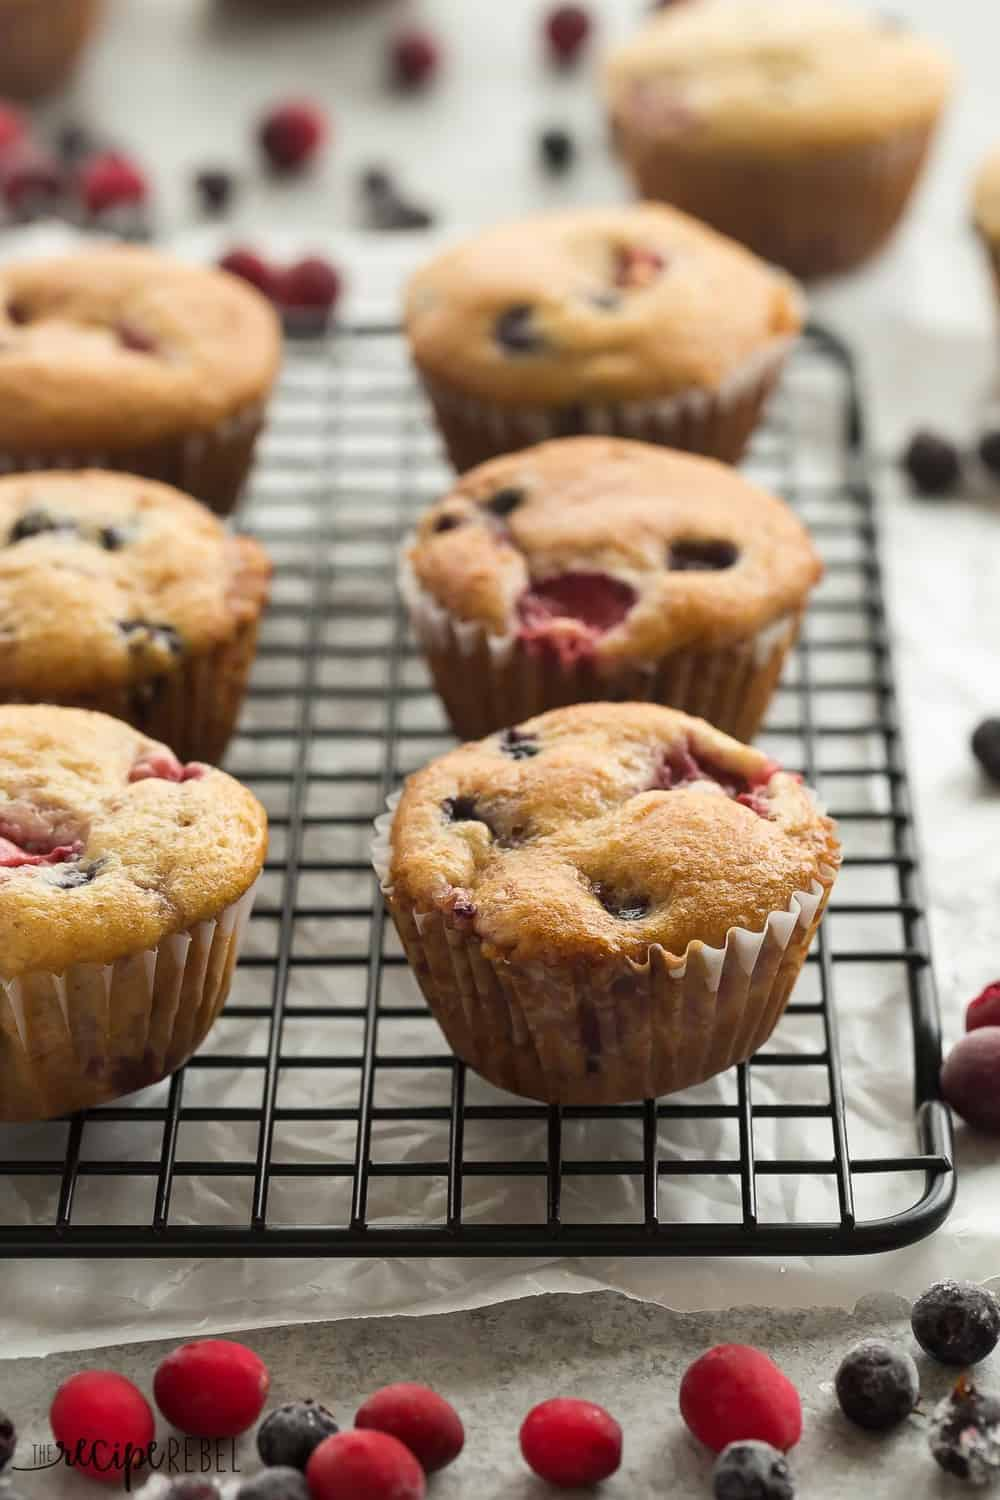 These Fruit Explosion Muffins on a cooling rack.